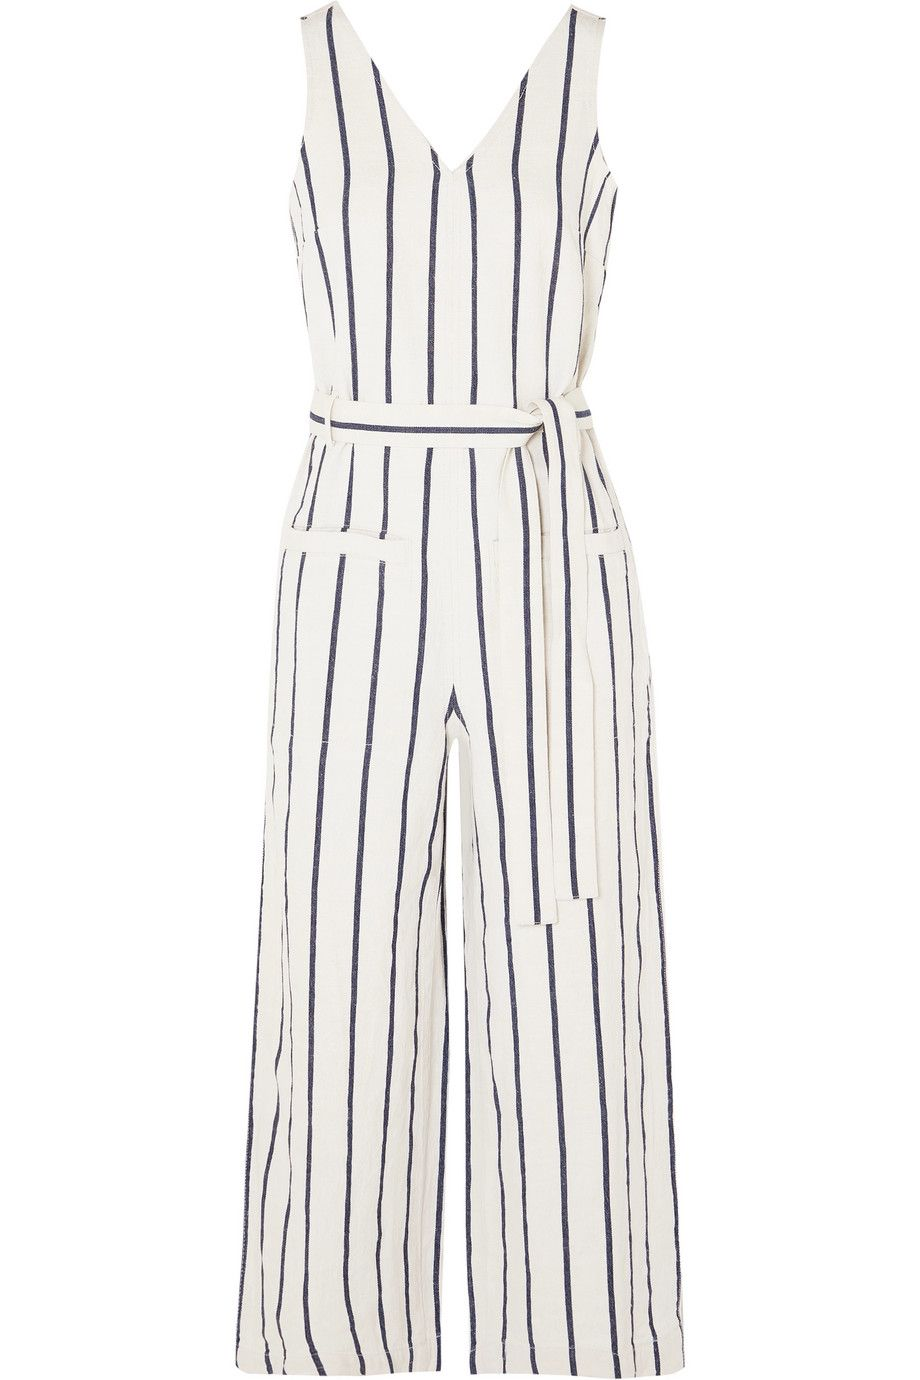 """Striped Jumpsuit Madewell net-a-porter.com $98.00 SHOP NOW """"In all honesty, who doesn't love a great jumpsuit? This one from Madewell checks off my two major boxes by being comfortable and breathable thanks to the blend of cotton and linen. Since it's literally one piece, I hardly have to give my outfit any thought, which is perfect for when I want to spend less time getting dressed and more time getting out the house.""""— Starr Bowenbank, Fellow"""